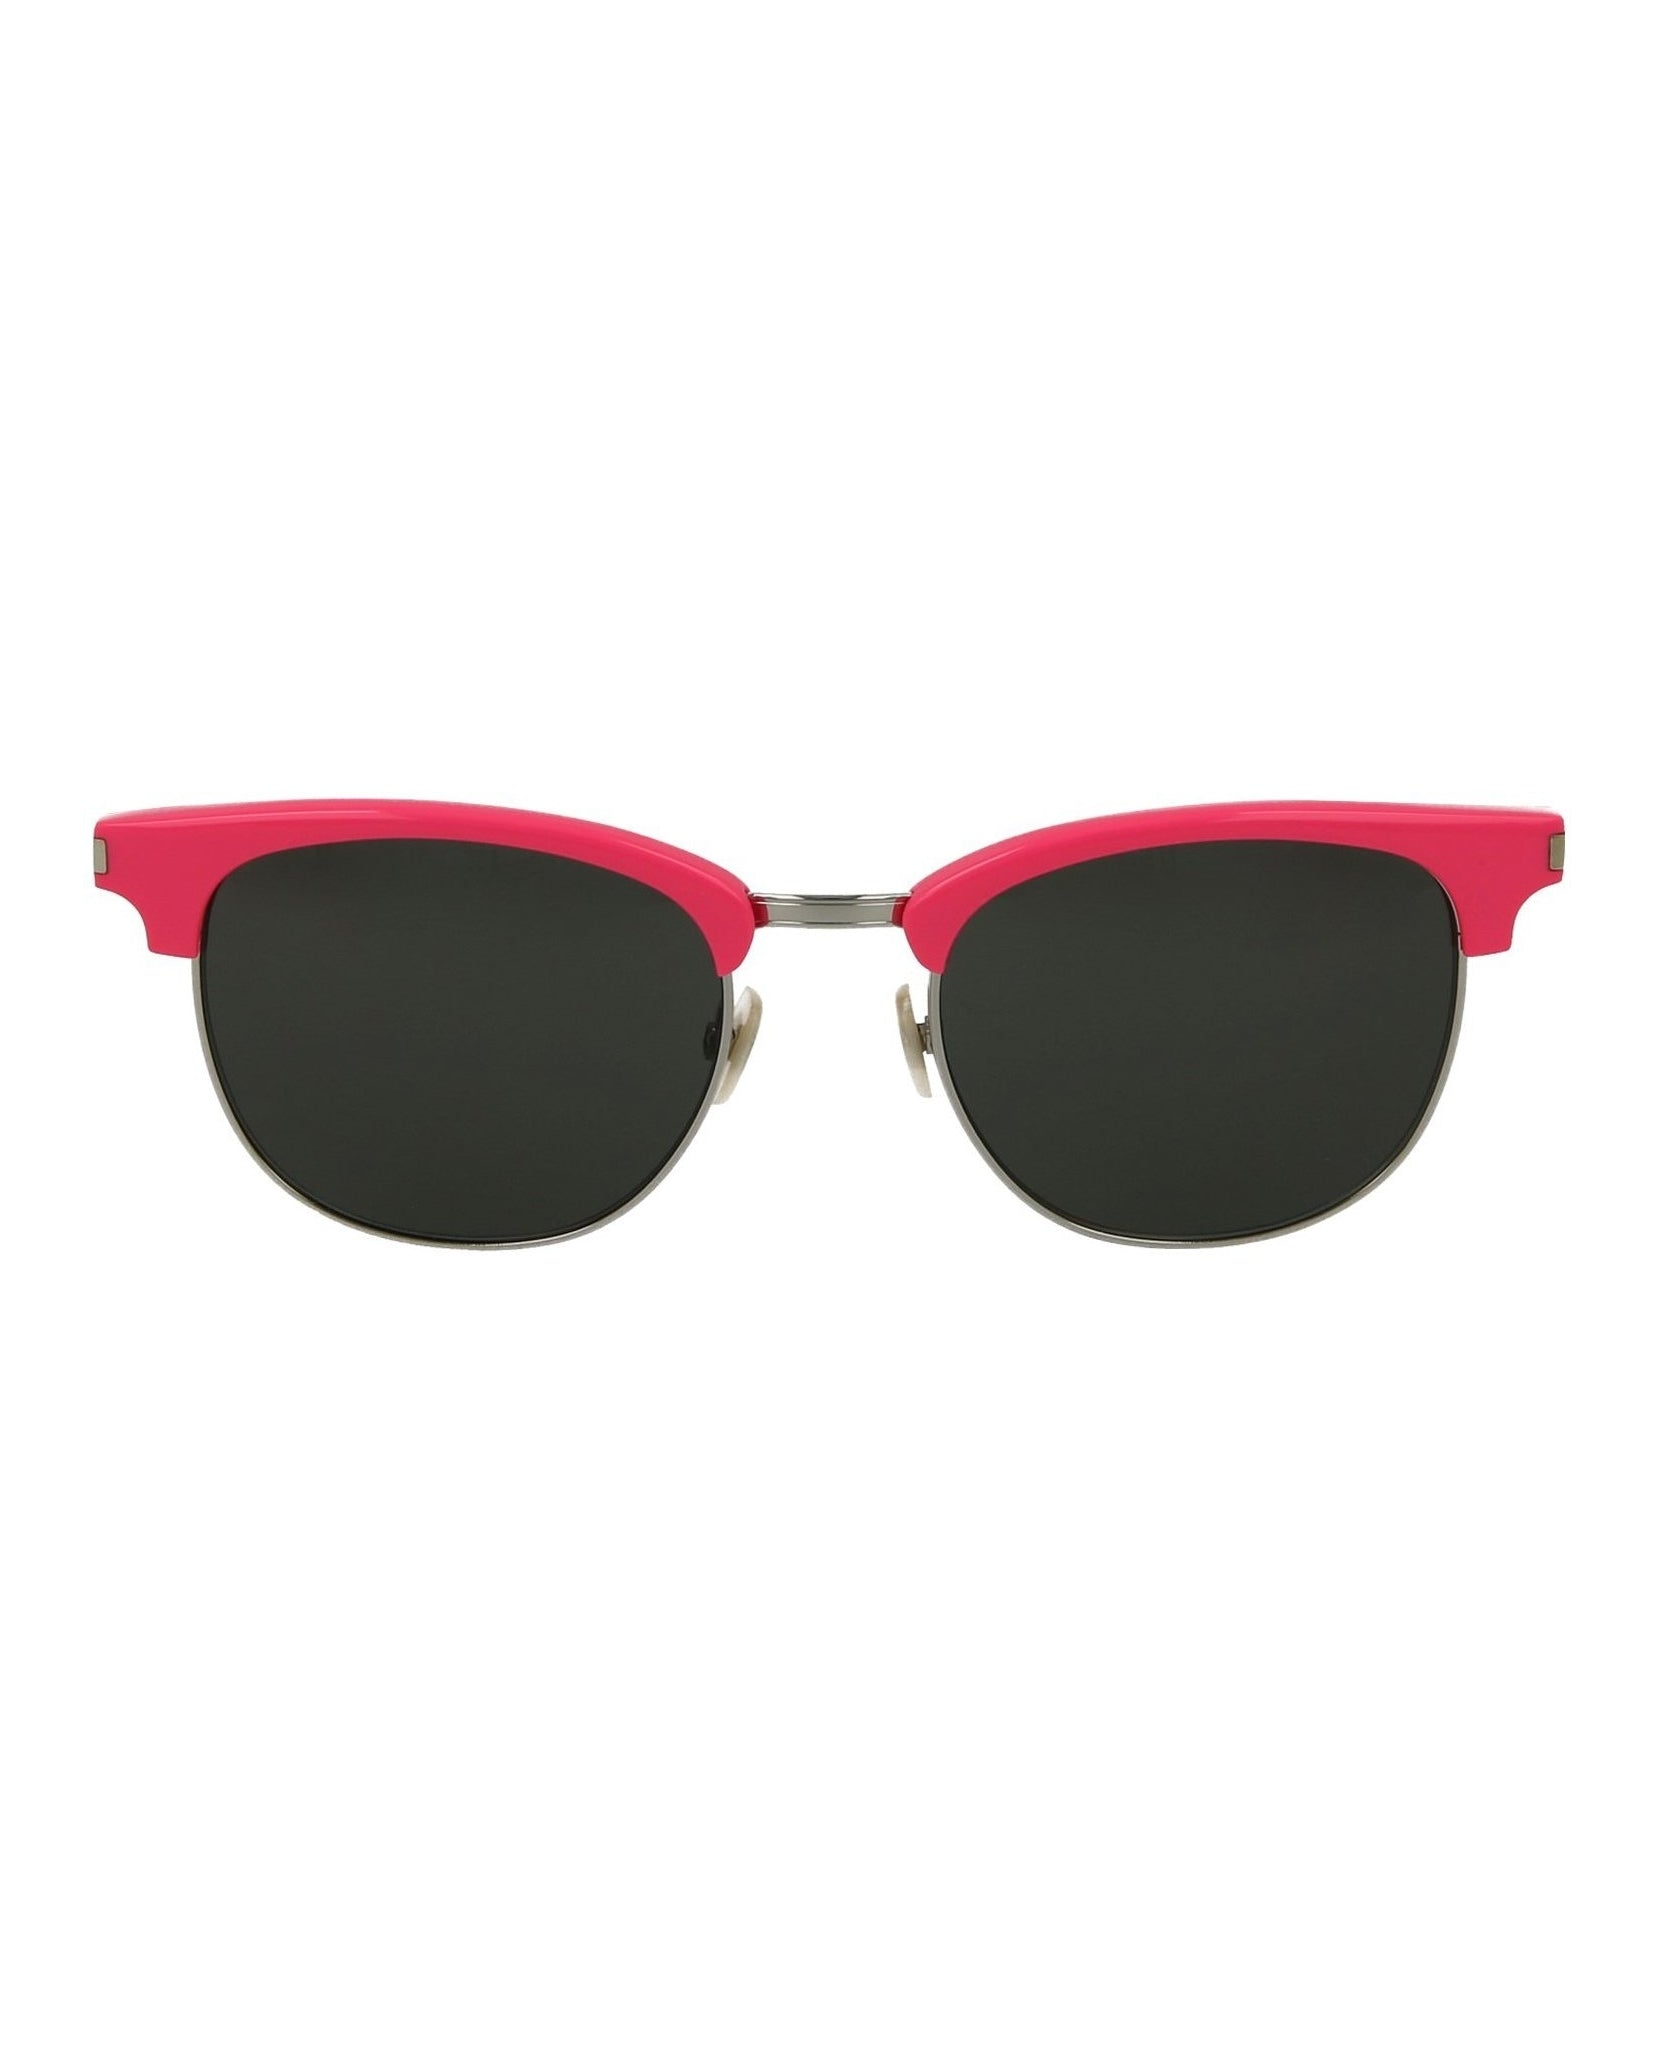 Saint Laurent Round/Oval Sunglasses